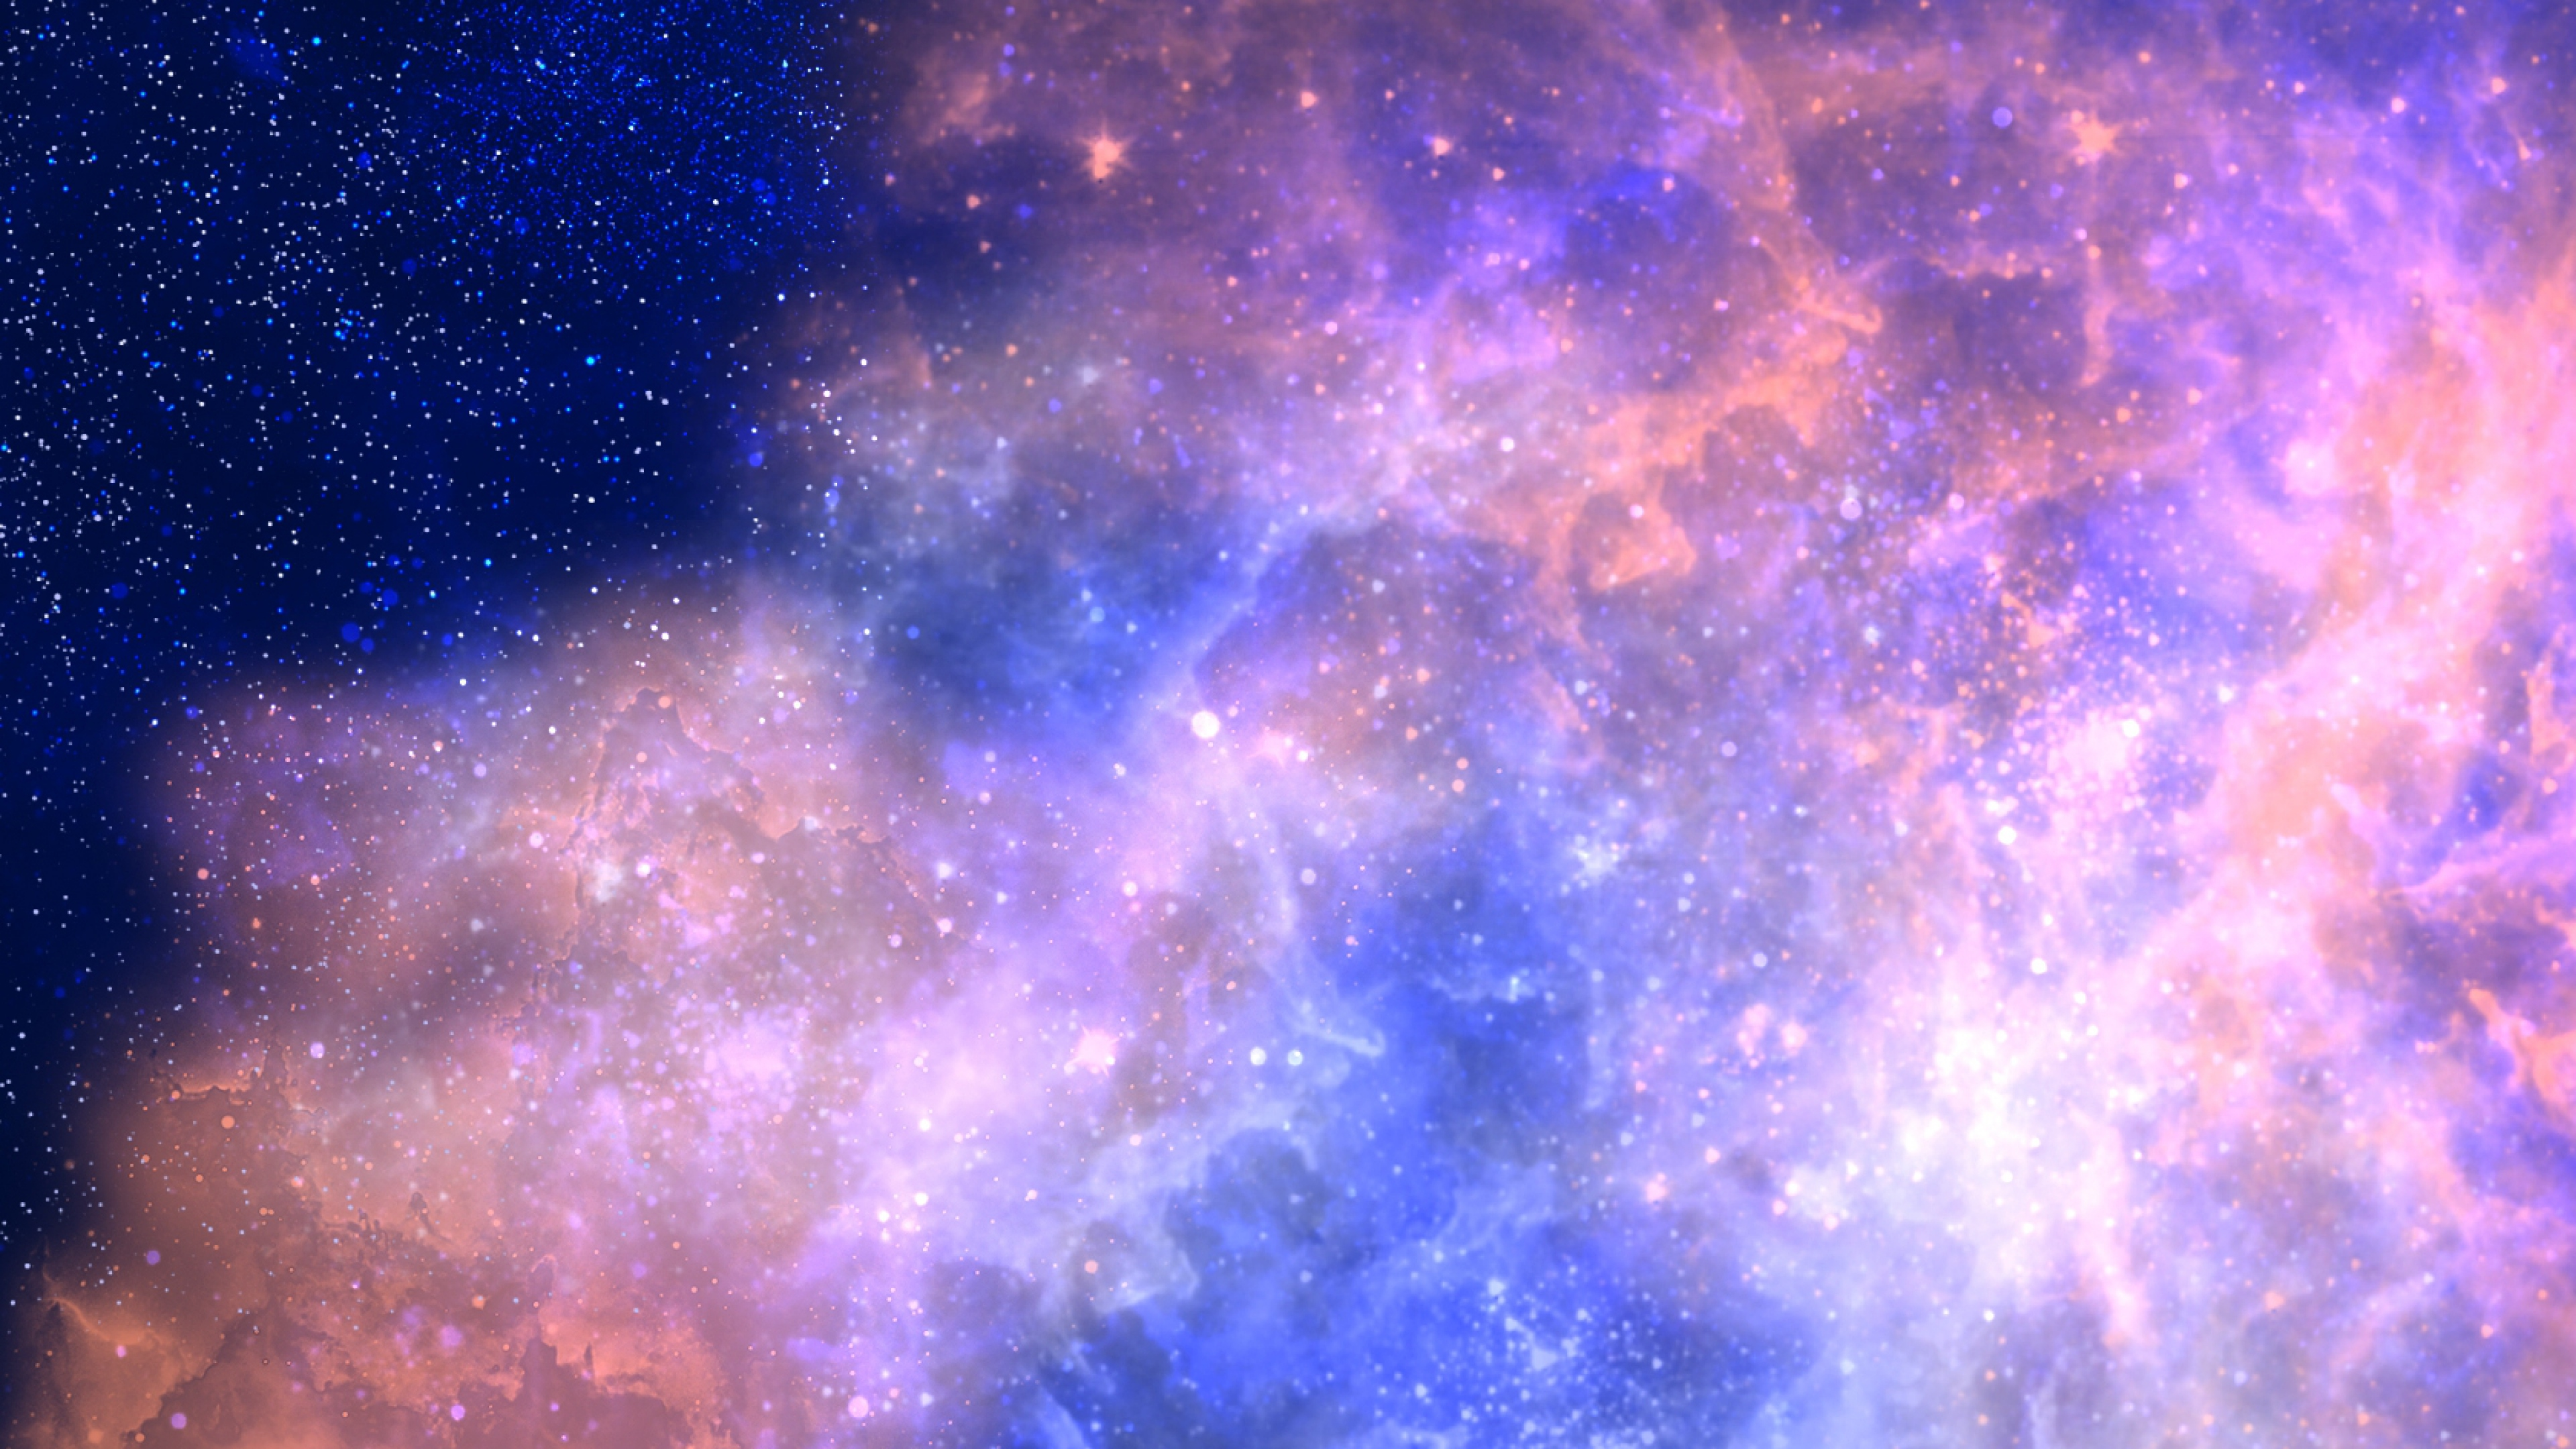 4k Space Wallpaper Themes HD 12007   HD Wallpapers Site 3840x2160